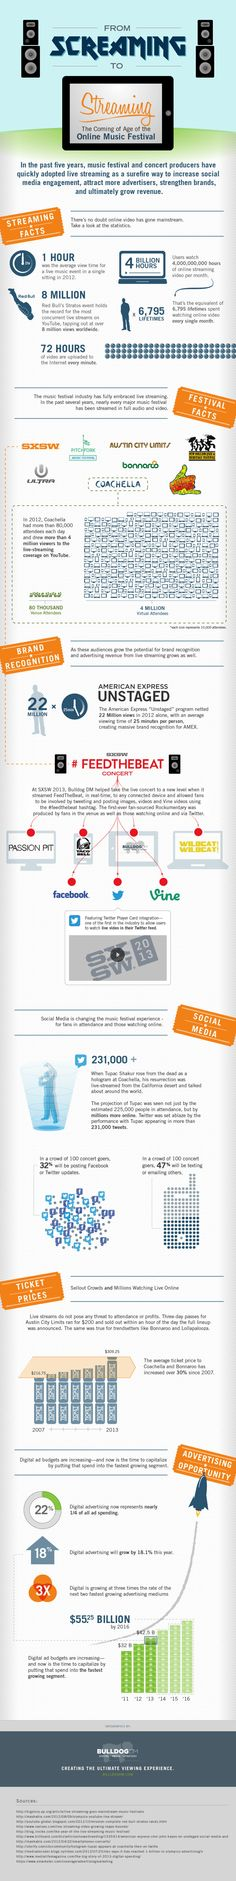 Fantastic Infographic from Bulldogdm.com on the rise of online streaming concert events!